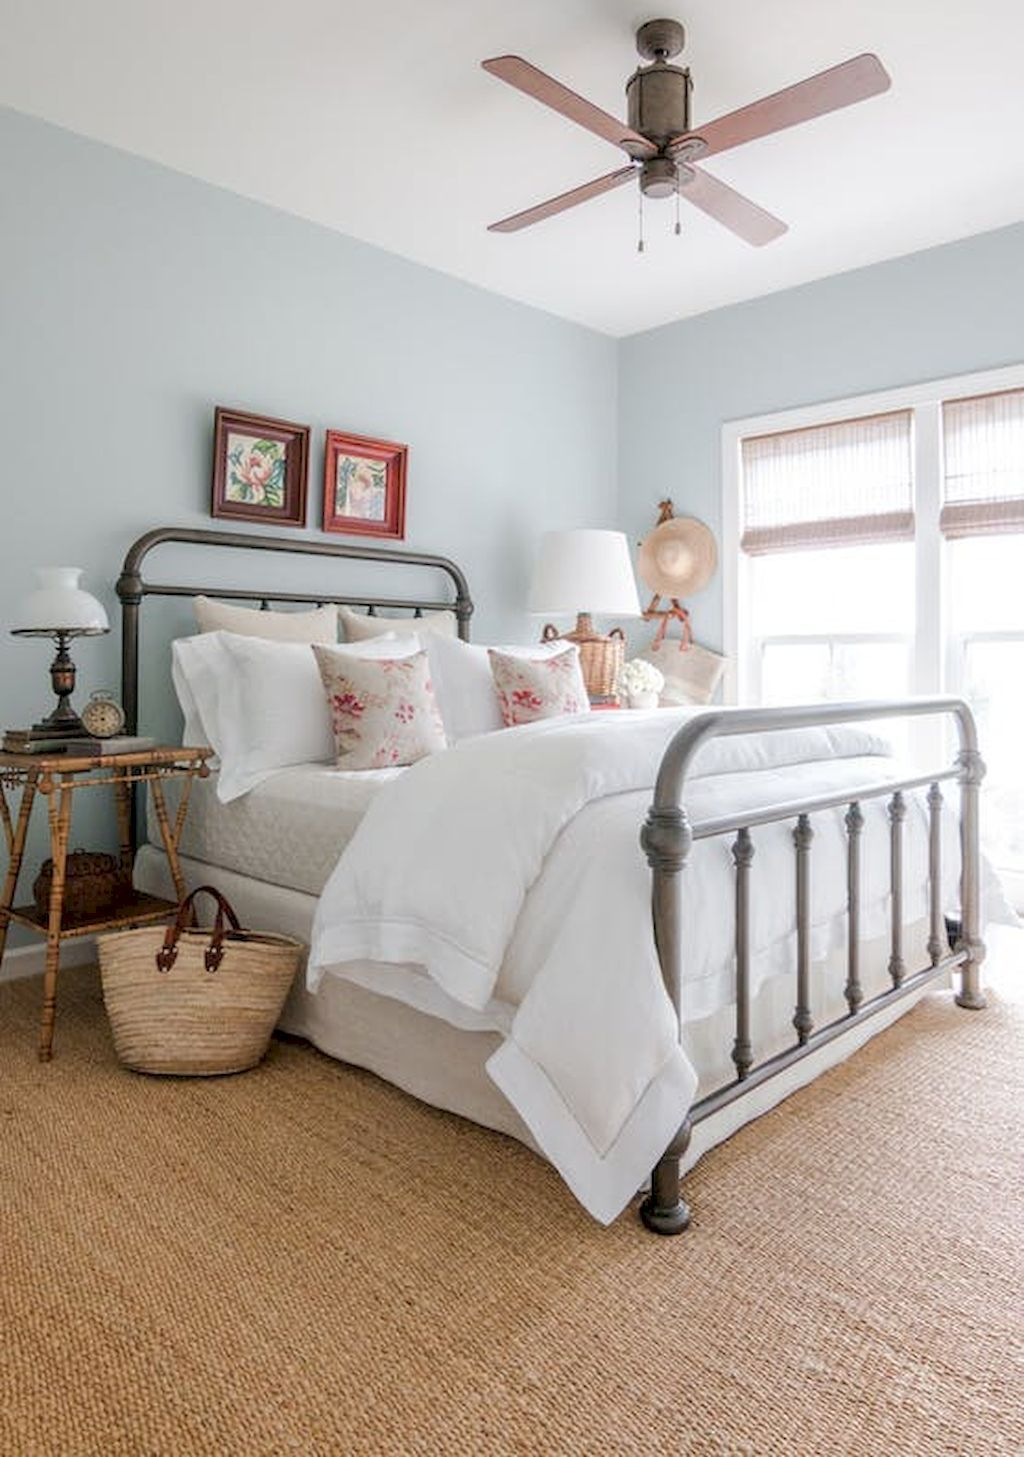 Rustic farmhouse style master bedroom ideas (50 Rustic